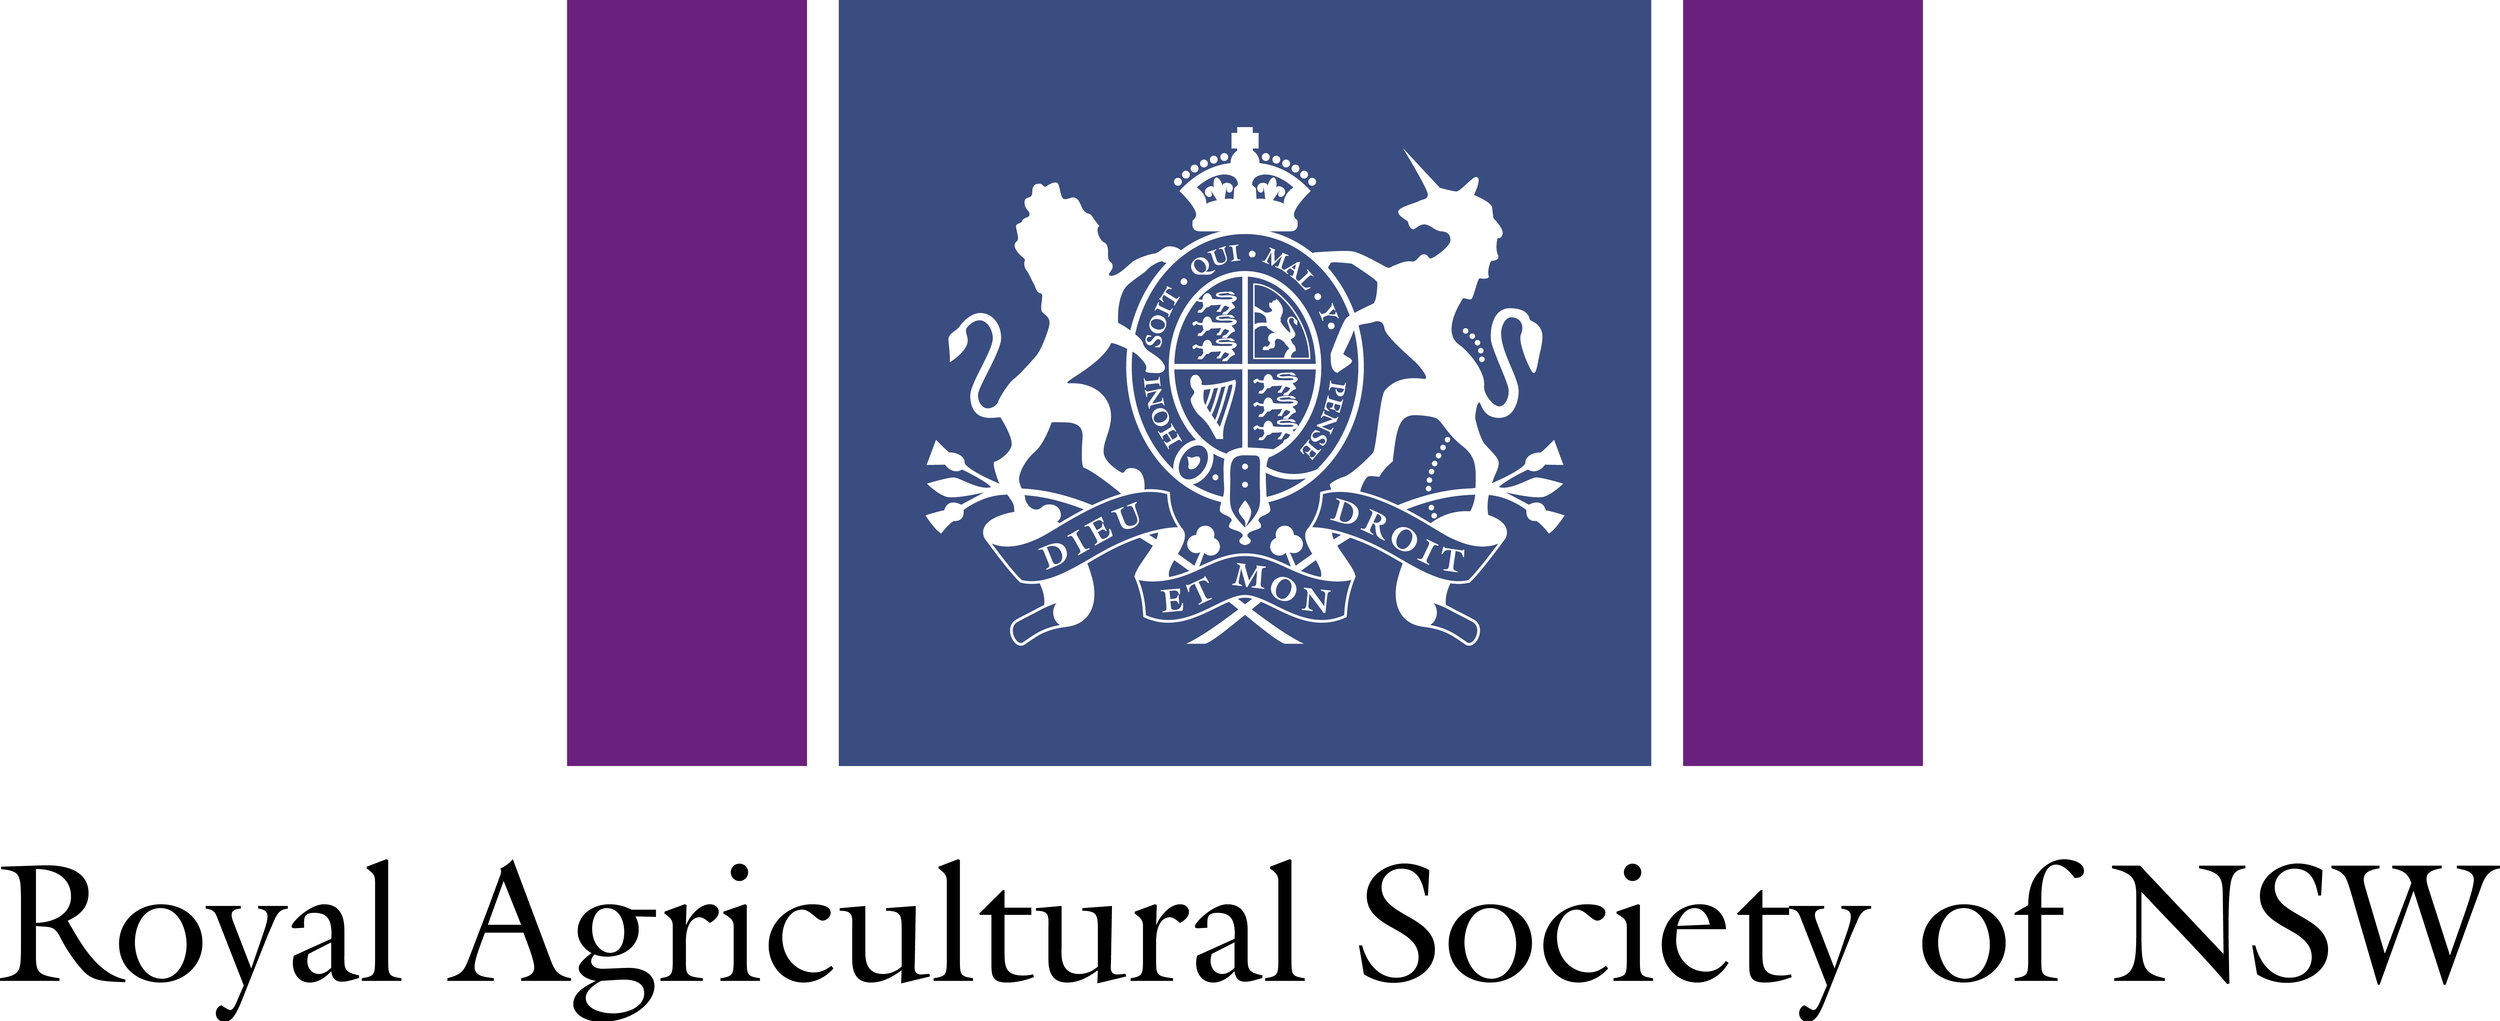 Royal Agricultural Society of NSW - RAS - purple and blue.jpg